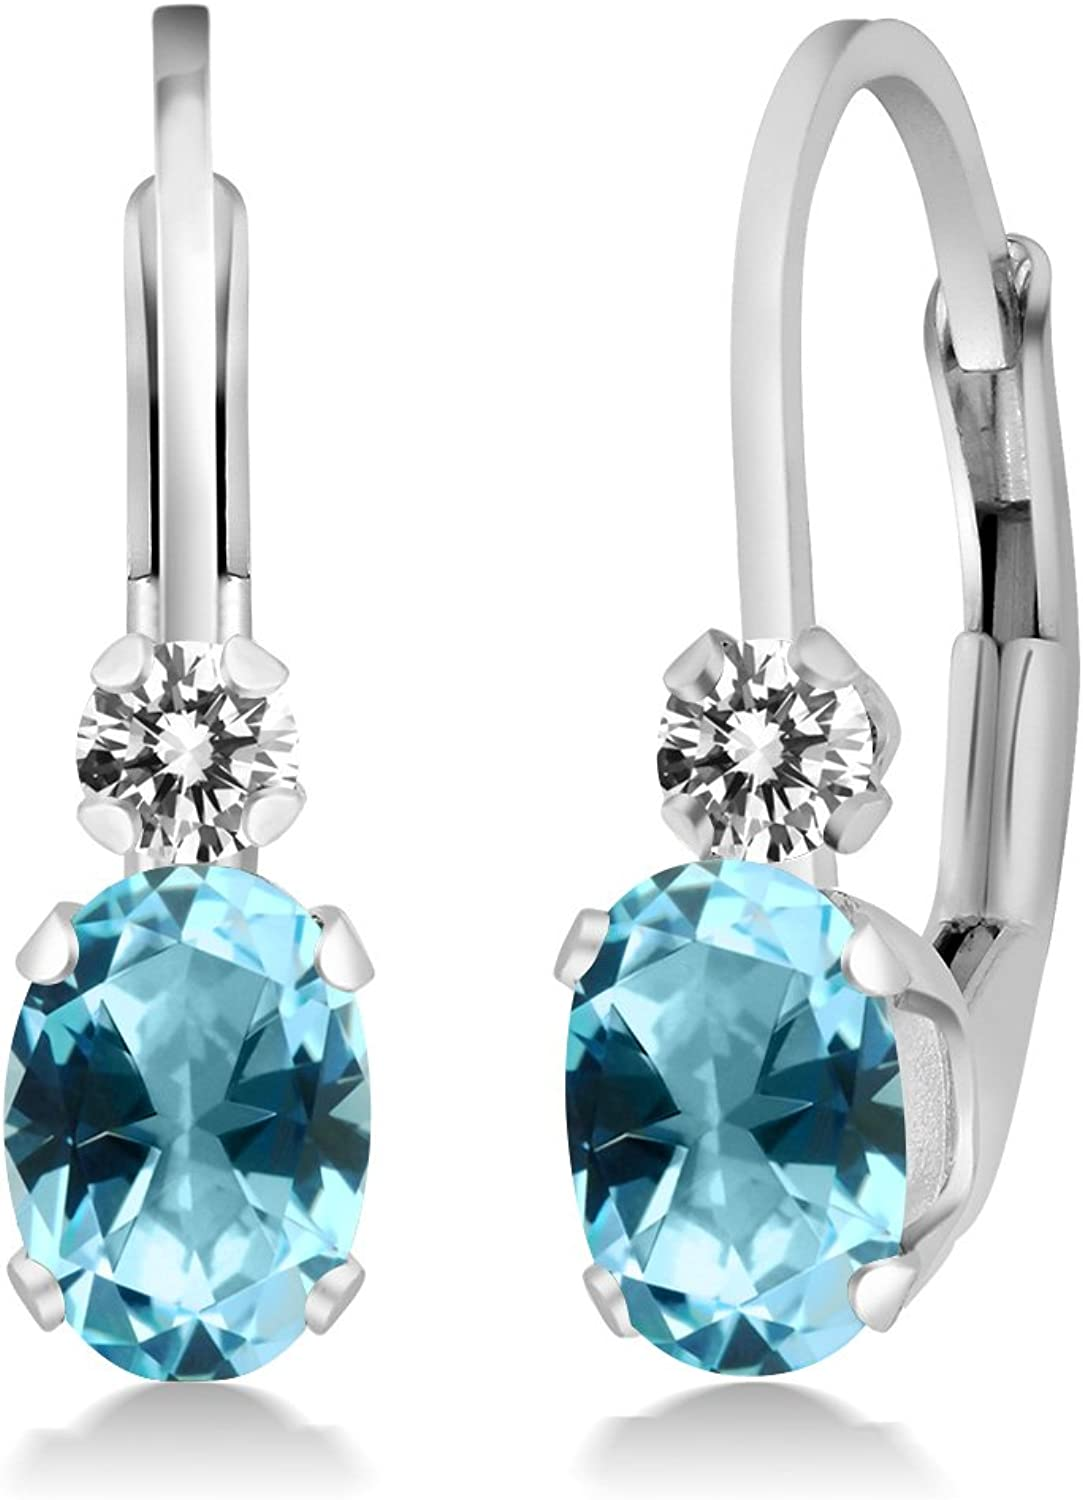 1.07 Ct 925 Sterling Silver Earrings Made With Oval Ice bluee Swarovski Topaz